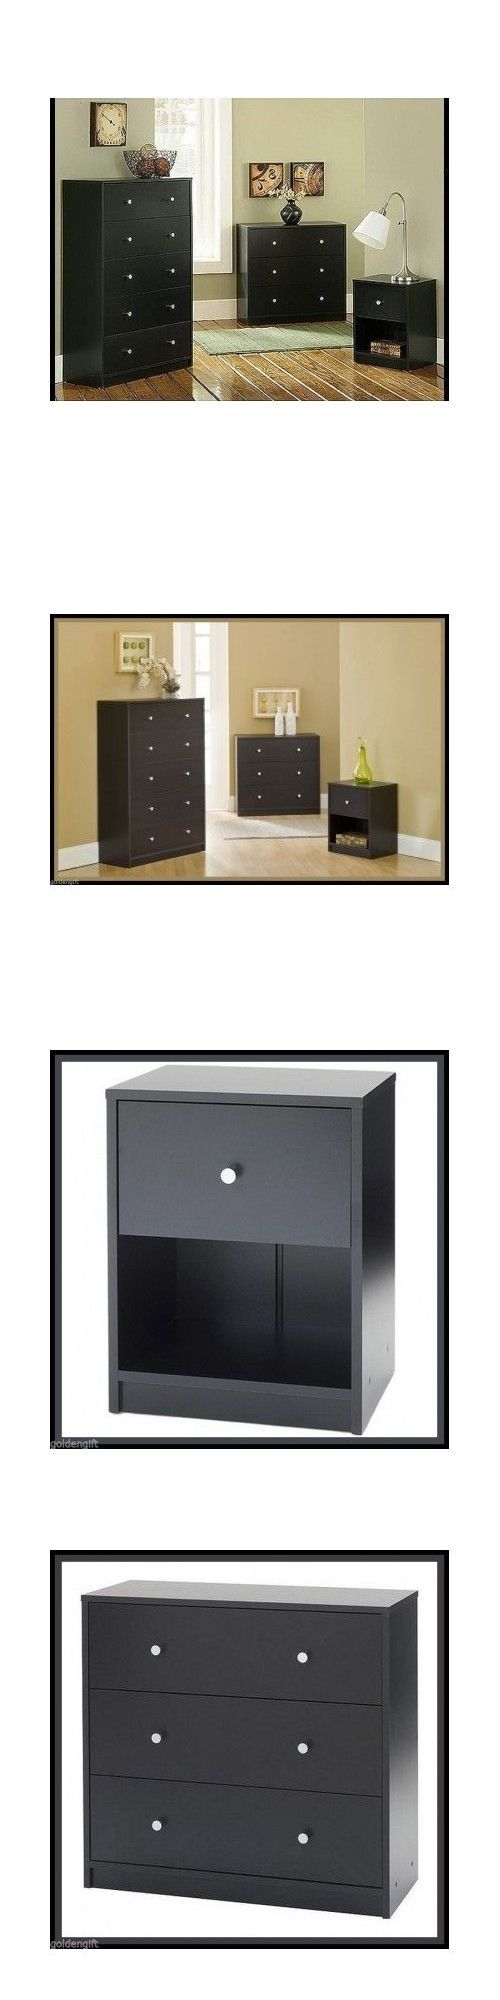 Bedding: Contemporary Bedroom Furniture Set 3 Piece Black Dresser Chest Nightstand Wooden BUY IT NOW ONLY: $239.99